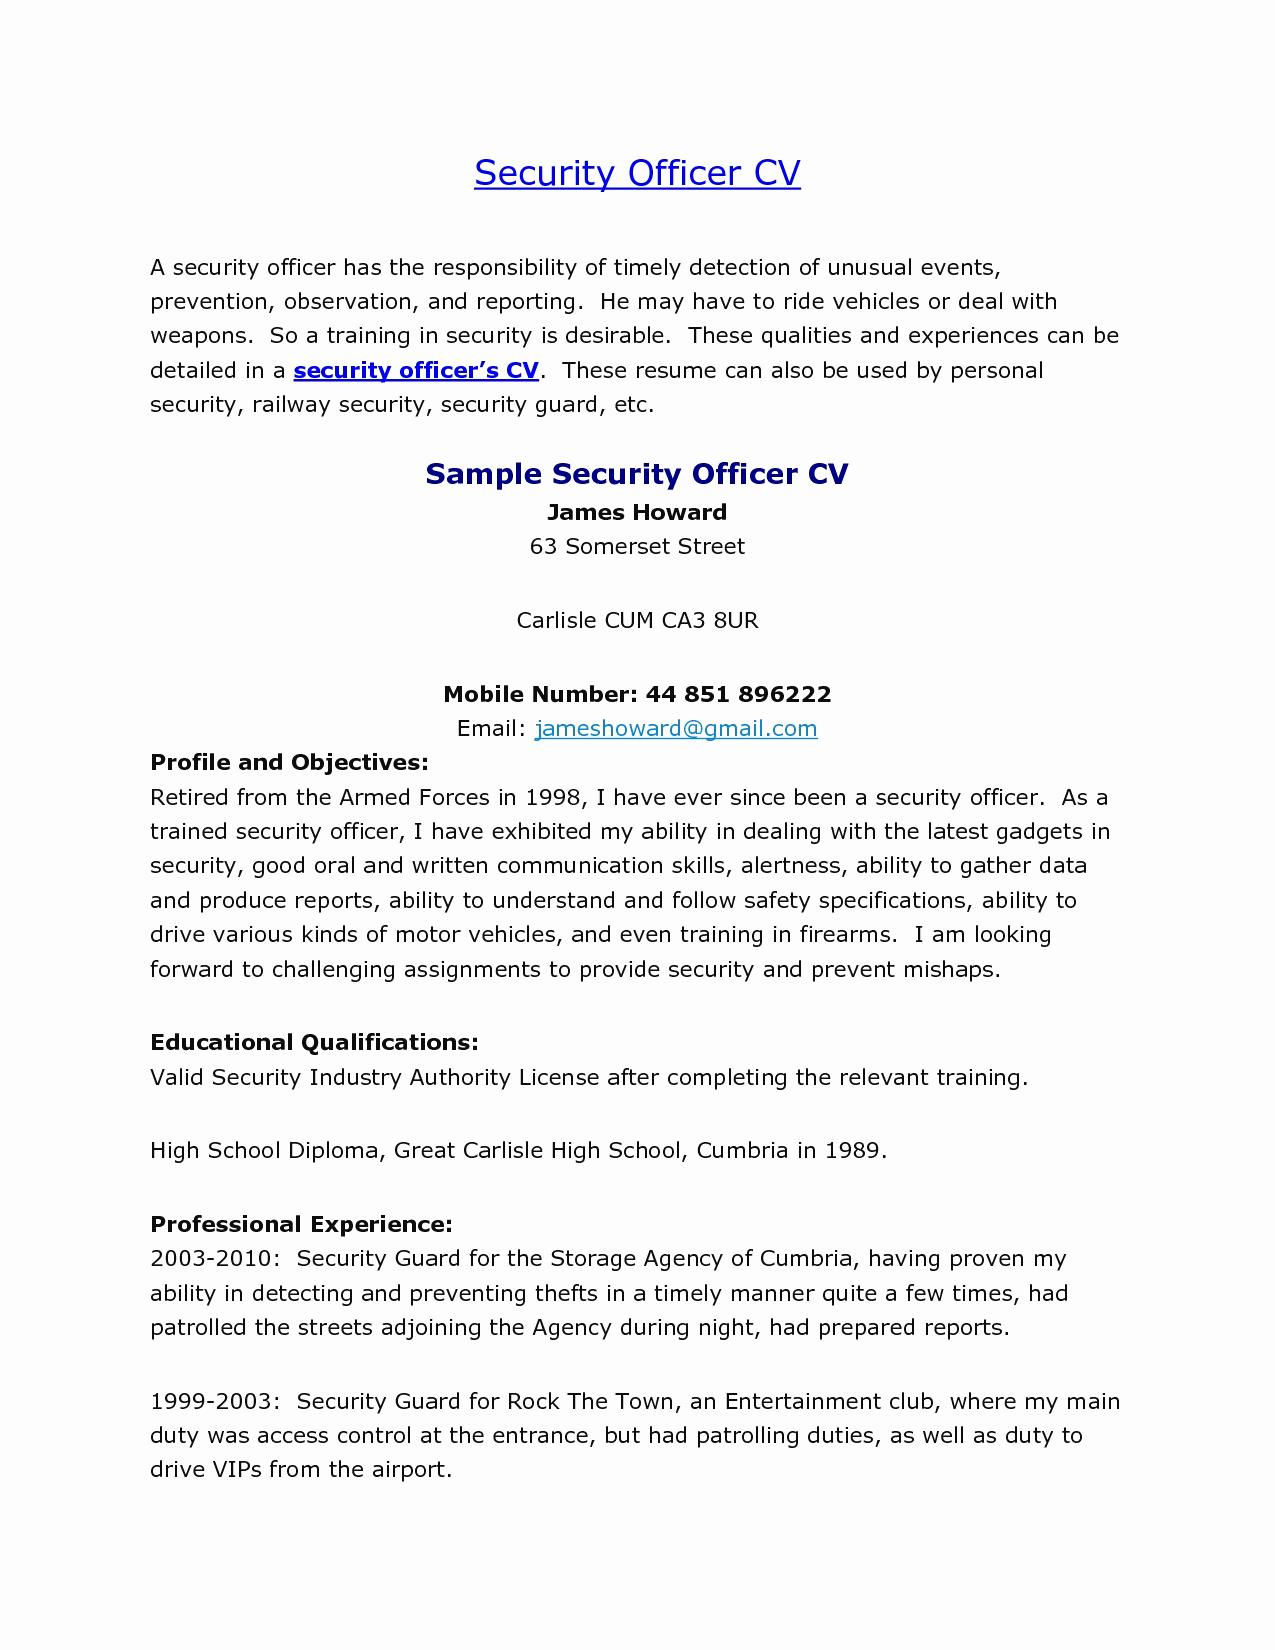 Security Guard Resume Sample - Sample Resume for Overnight Stocker Luxury Security Guard Resume